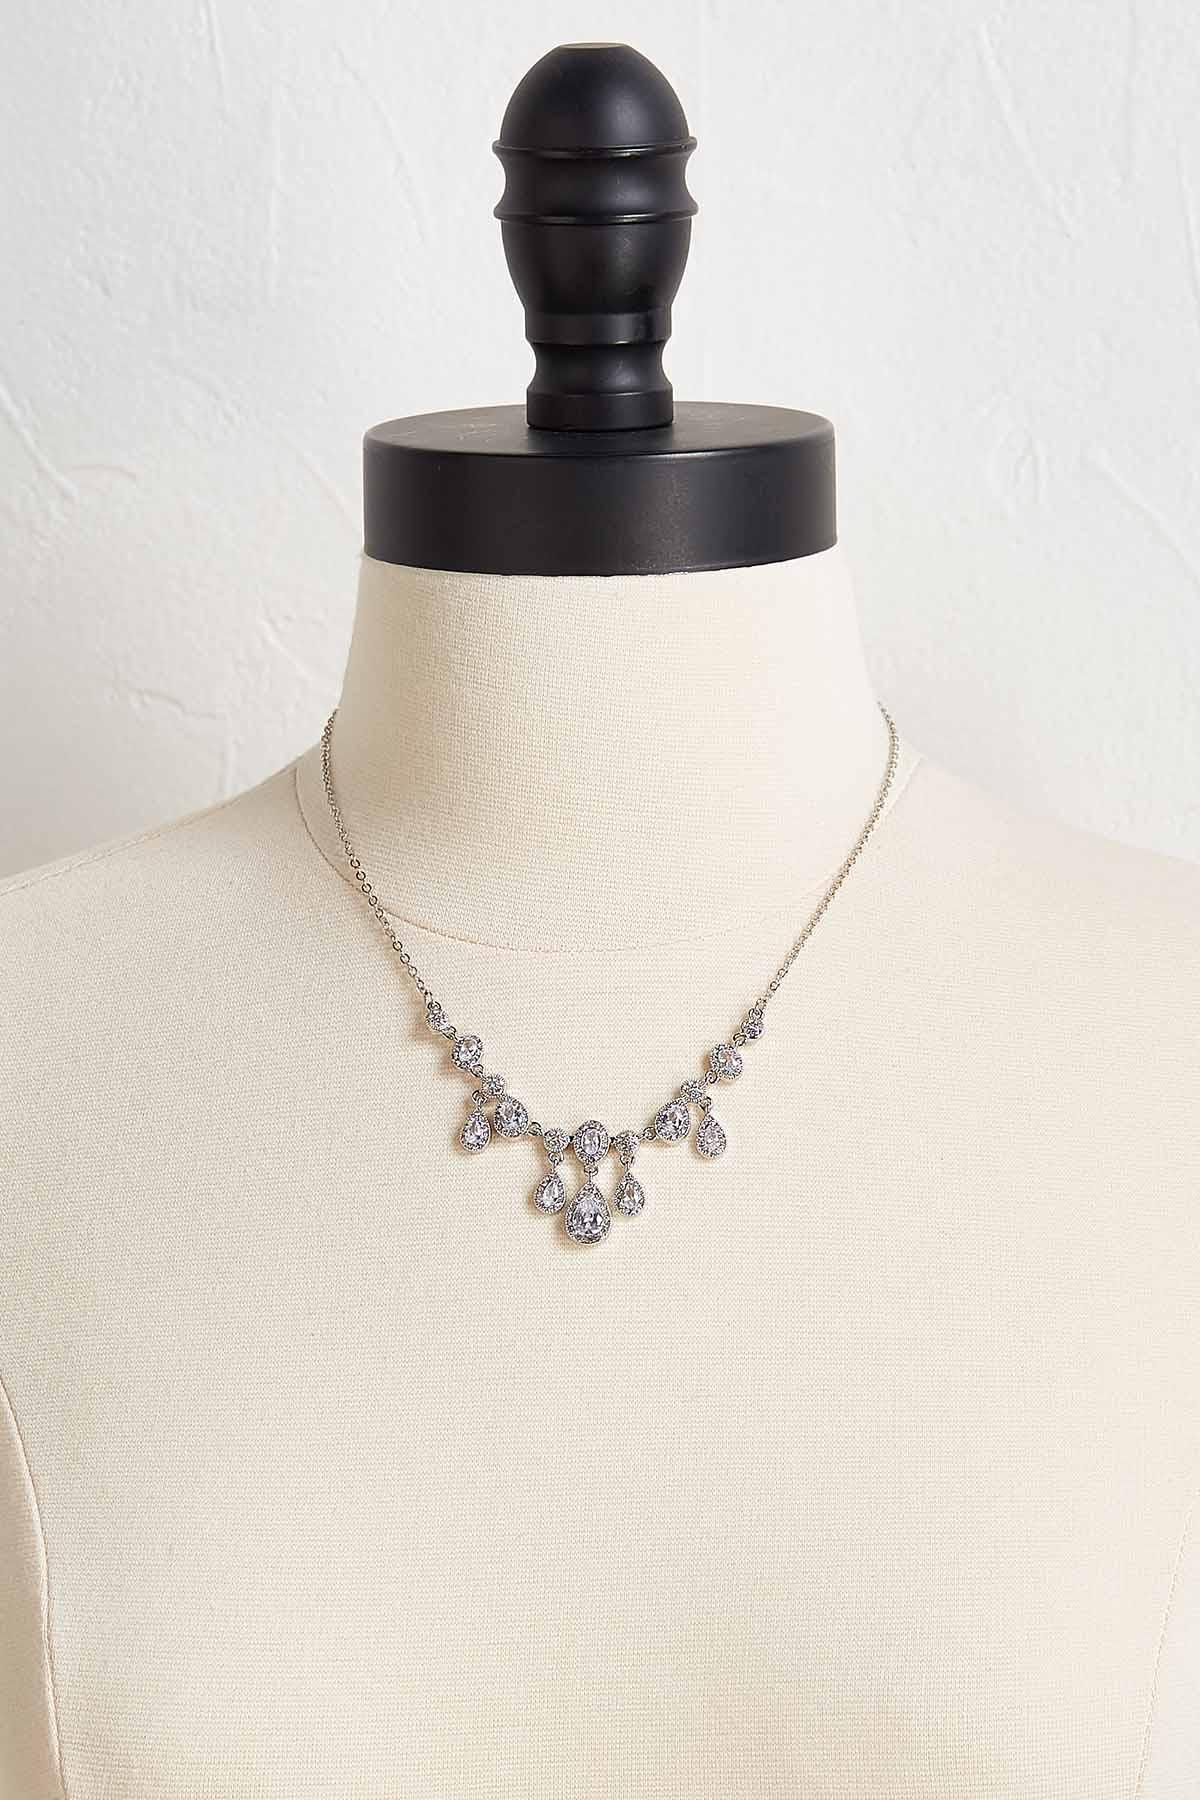 Vintage Stone Necklace And Earring Set